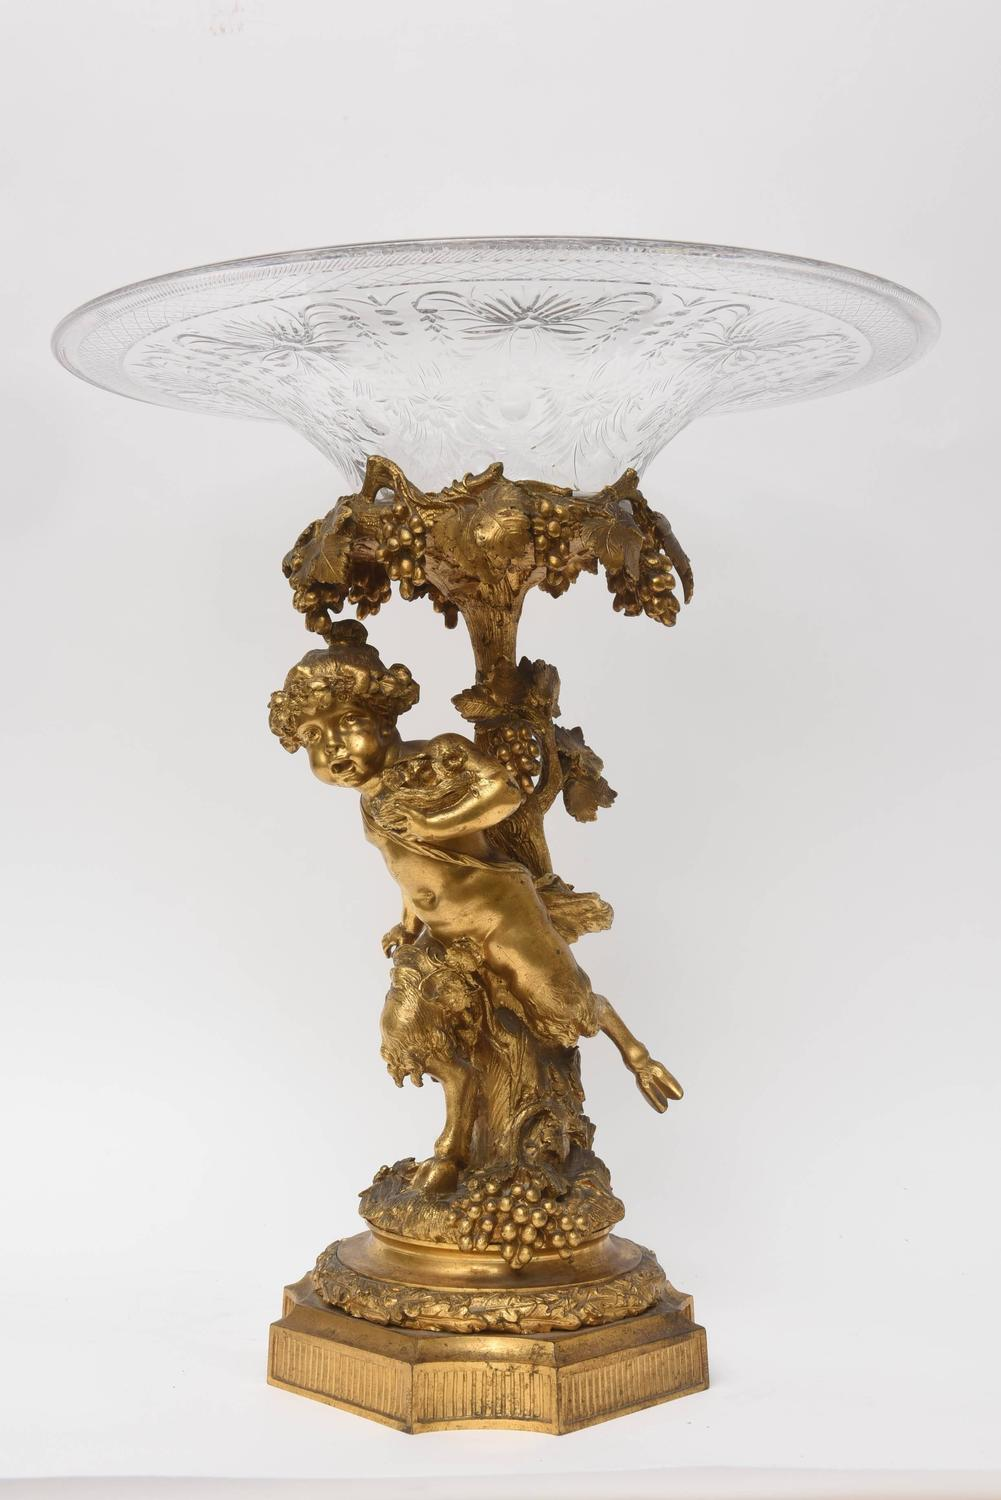 Antique gold doré bronze with bacchanal design and crystal